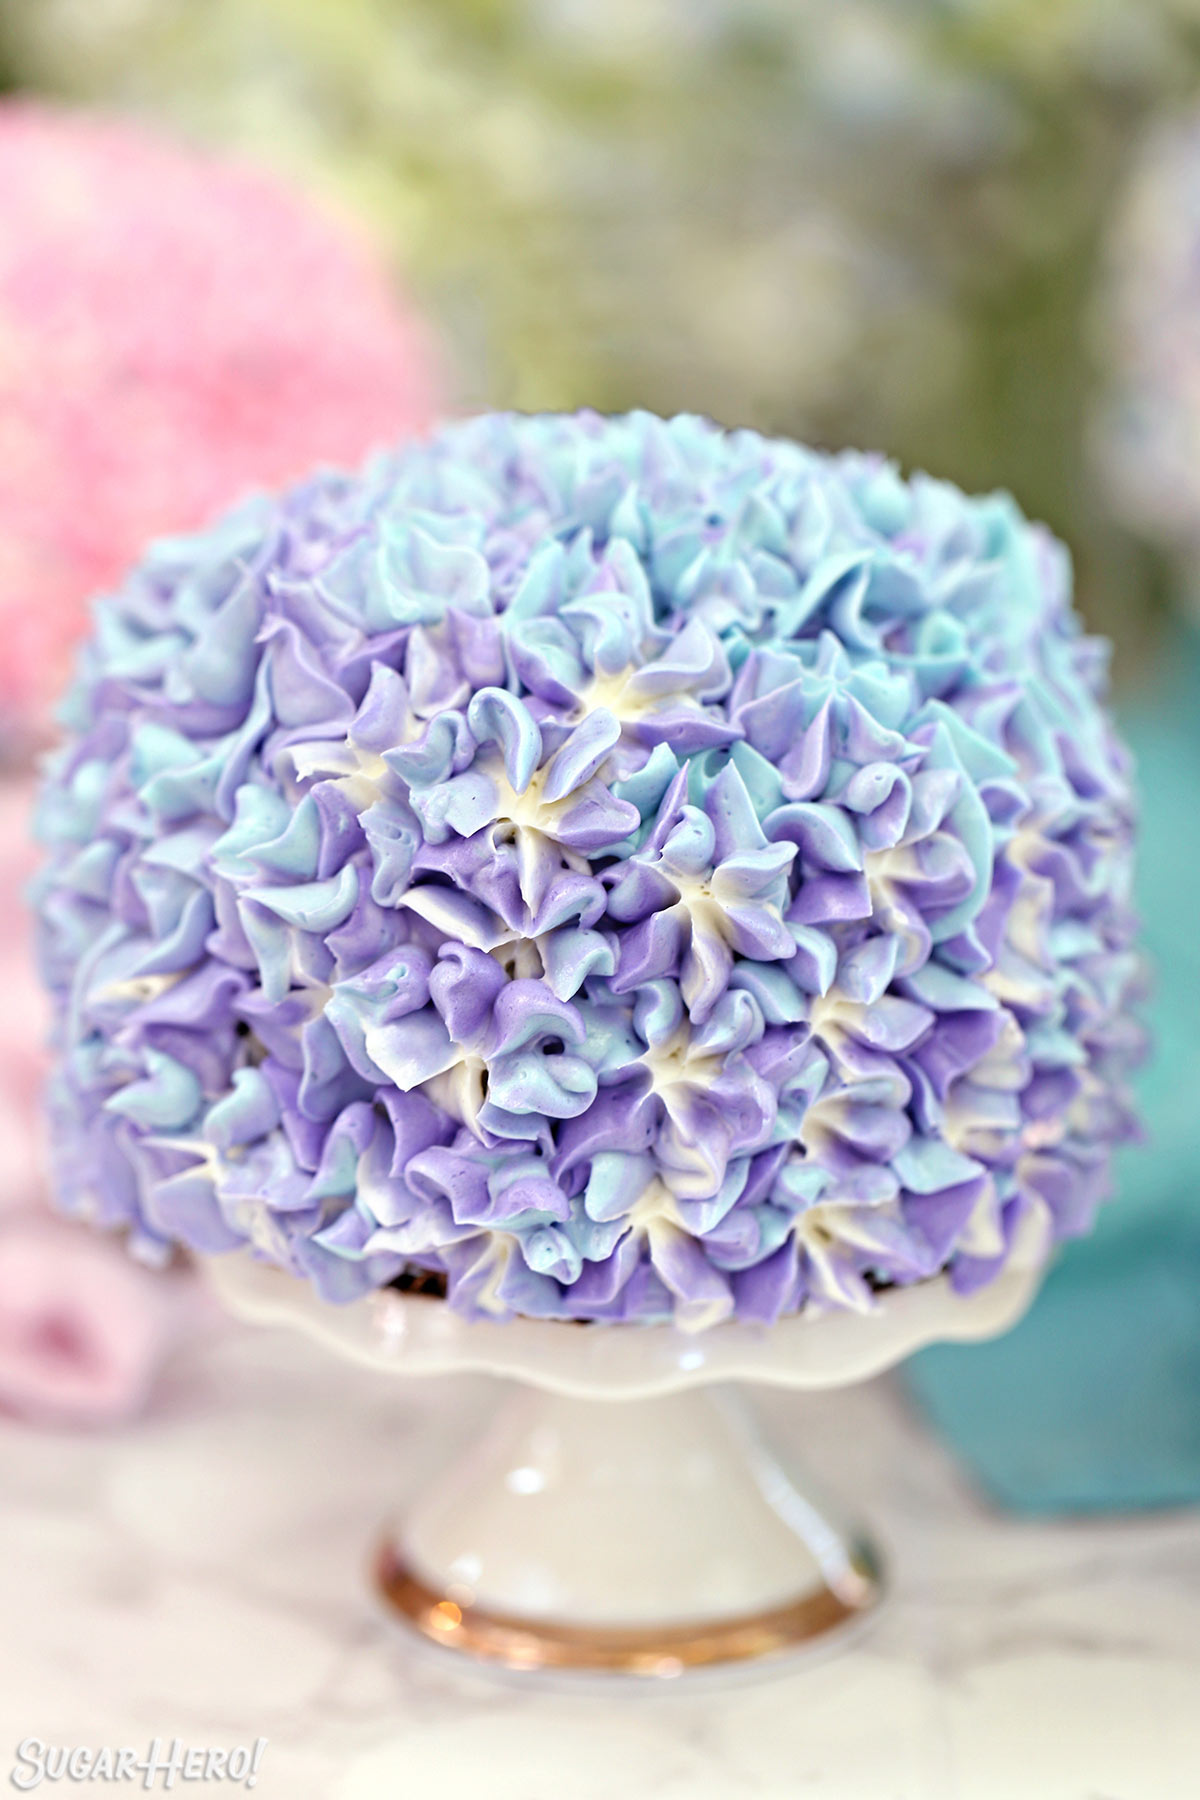 Hydrangea Cakes - A close up shot of a mini cake displayed on a stand. | From SugarHero.com